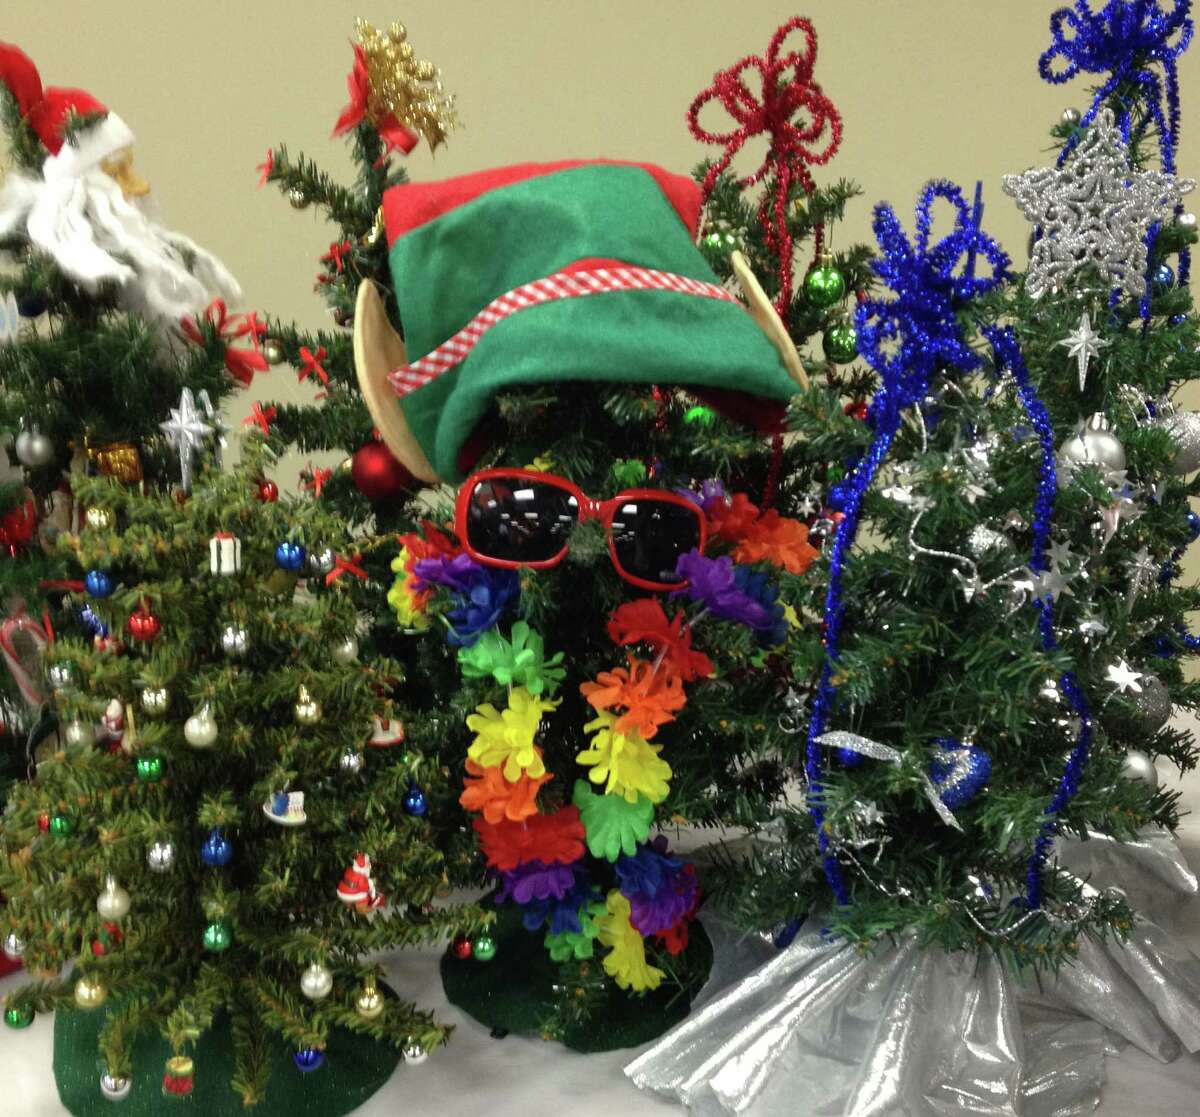 TriCare Hospice invites the community to decorate and donate miniature holiday trees for growing their second annual Hope Forest Nov. 30 to Dec. 6. The trees will be gifted to bereaved families as Legacy Trees in honor of their loved one.